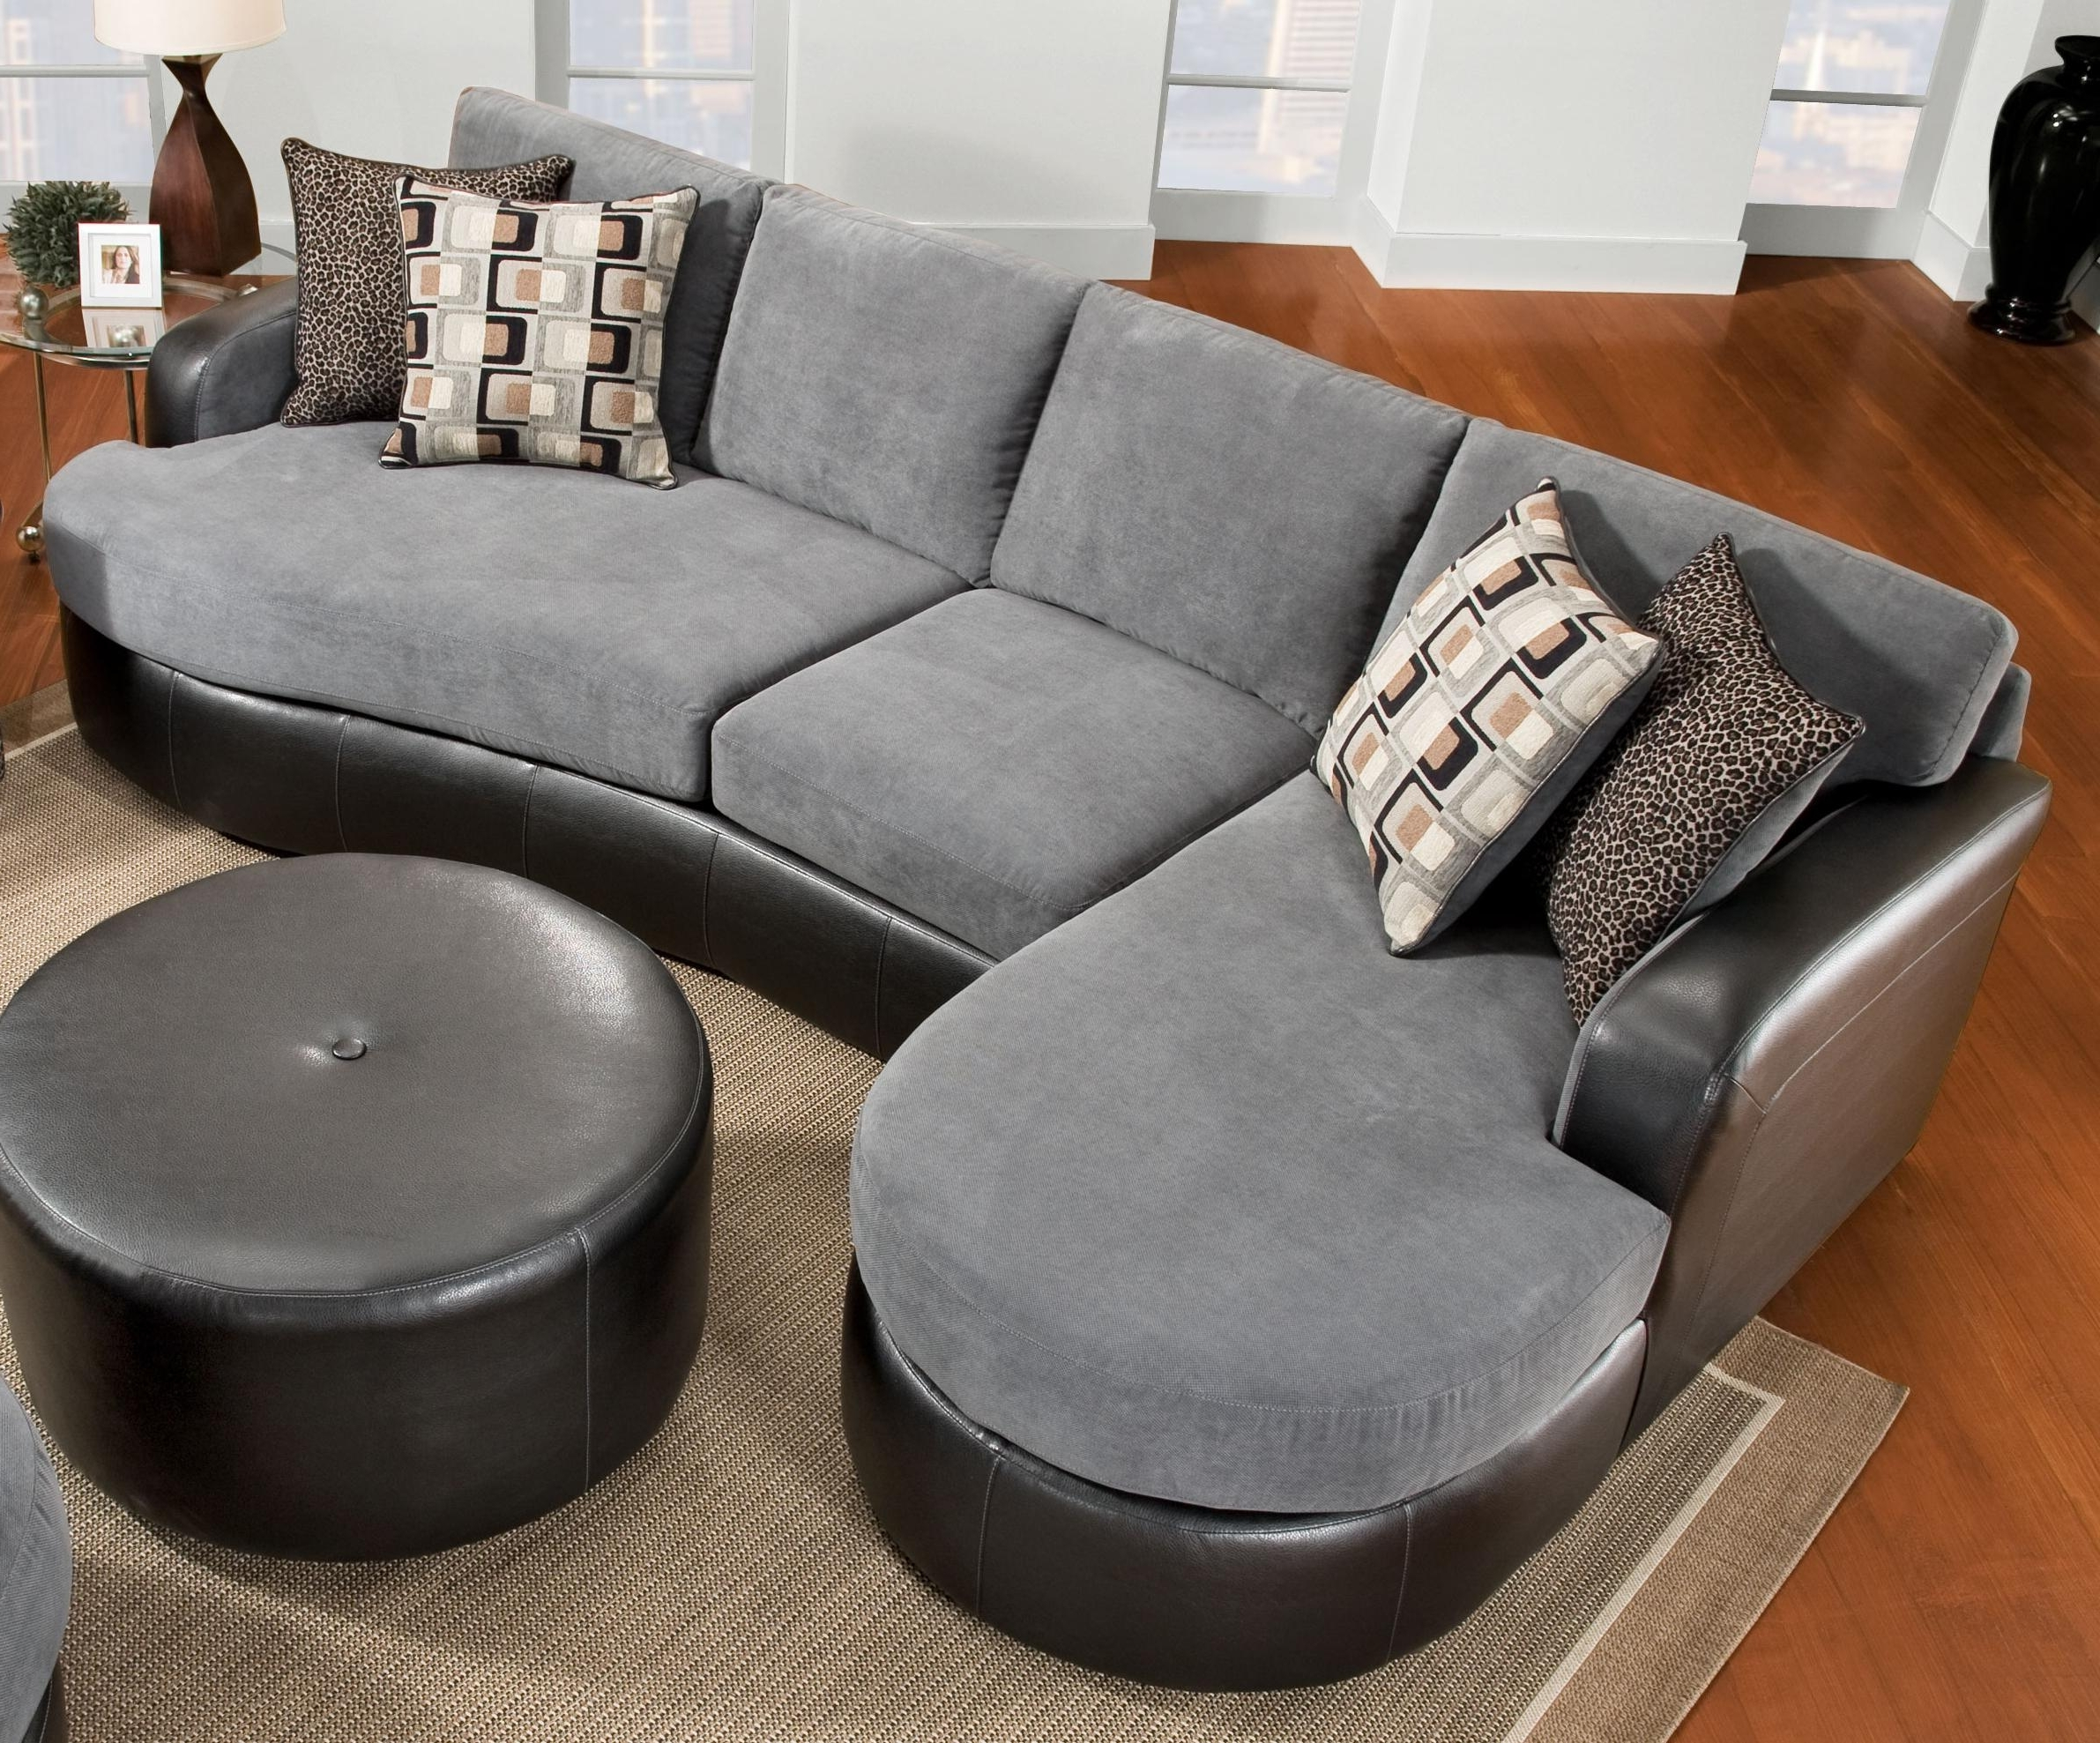 Elegant Chic Gray Velvet And Black Leather Sectional Sofa With F With Regard To Favorite Sofas With Chaise And Ottoman (View 3 of 15)